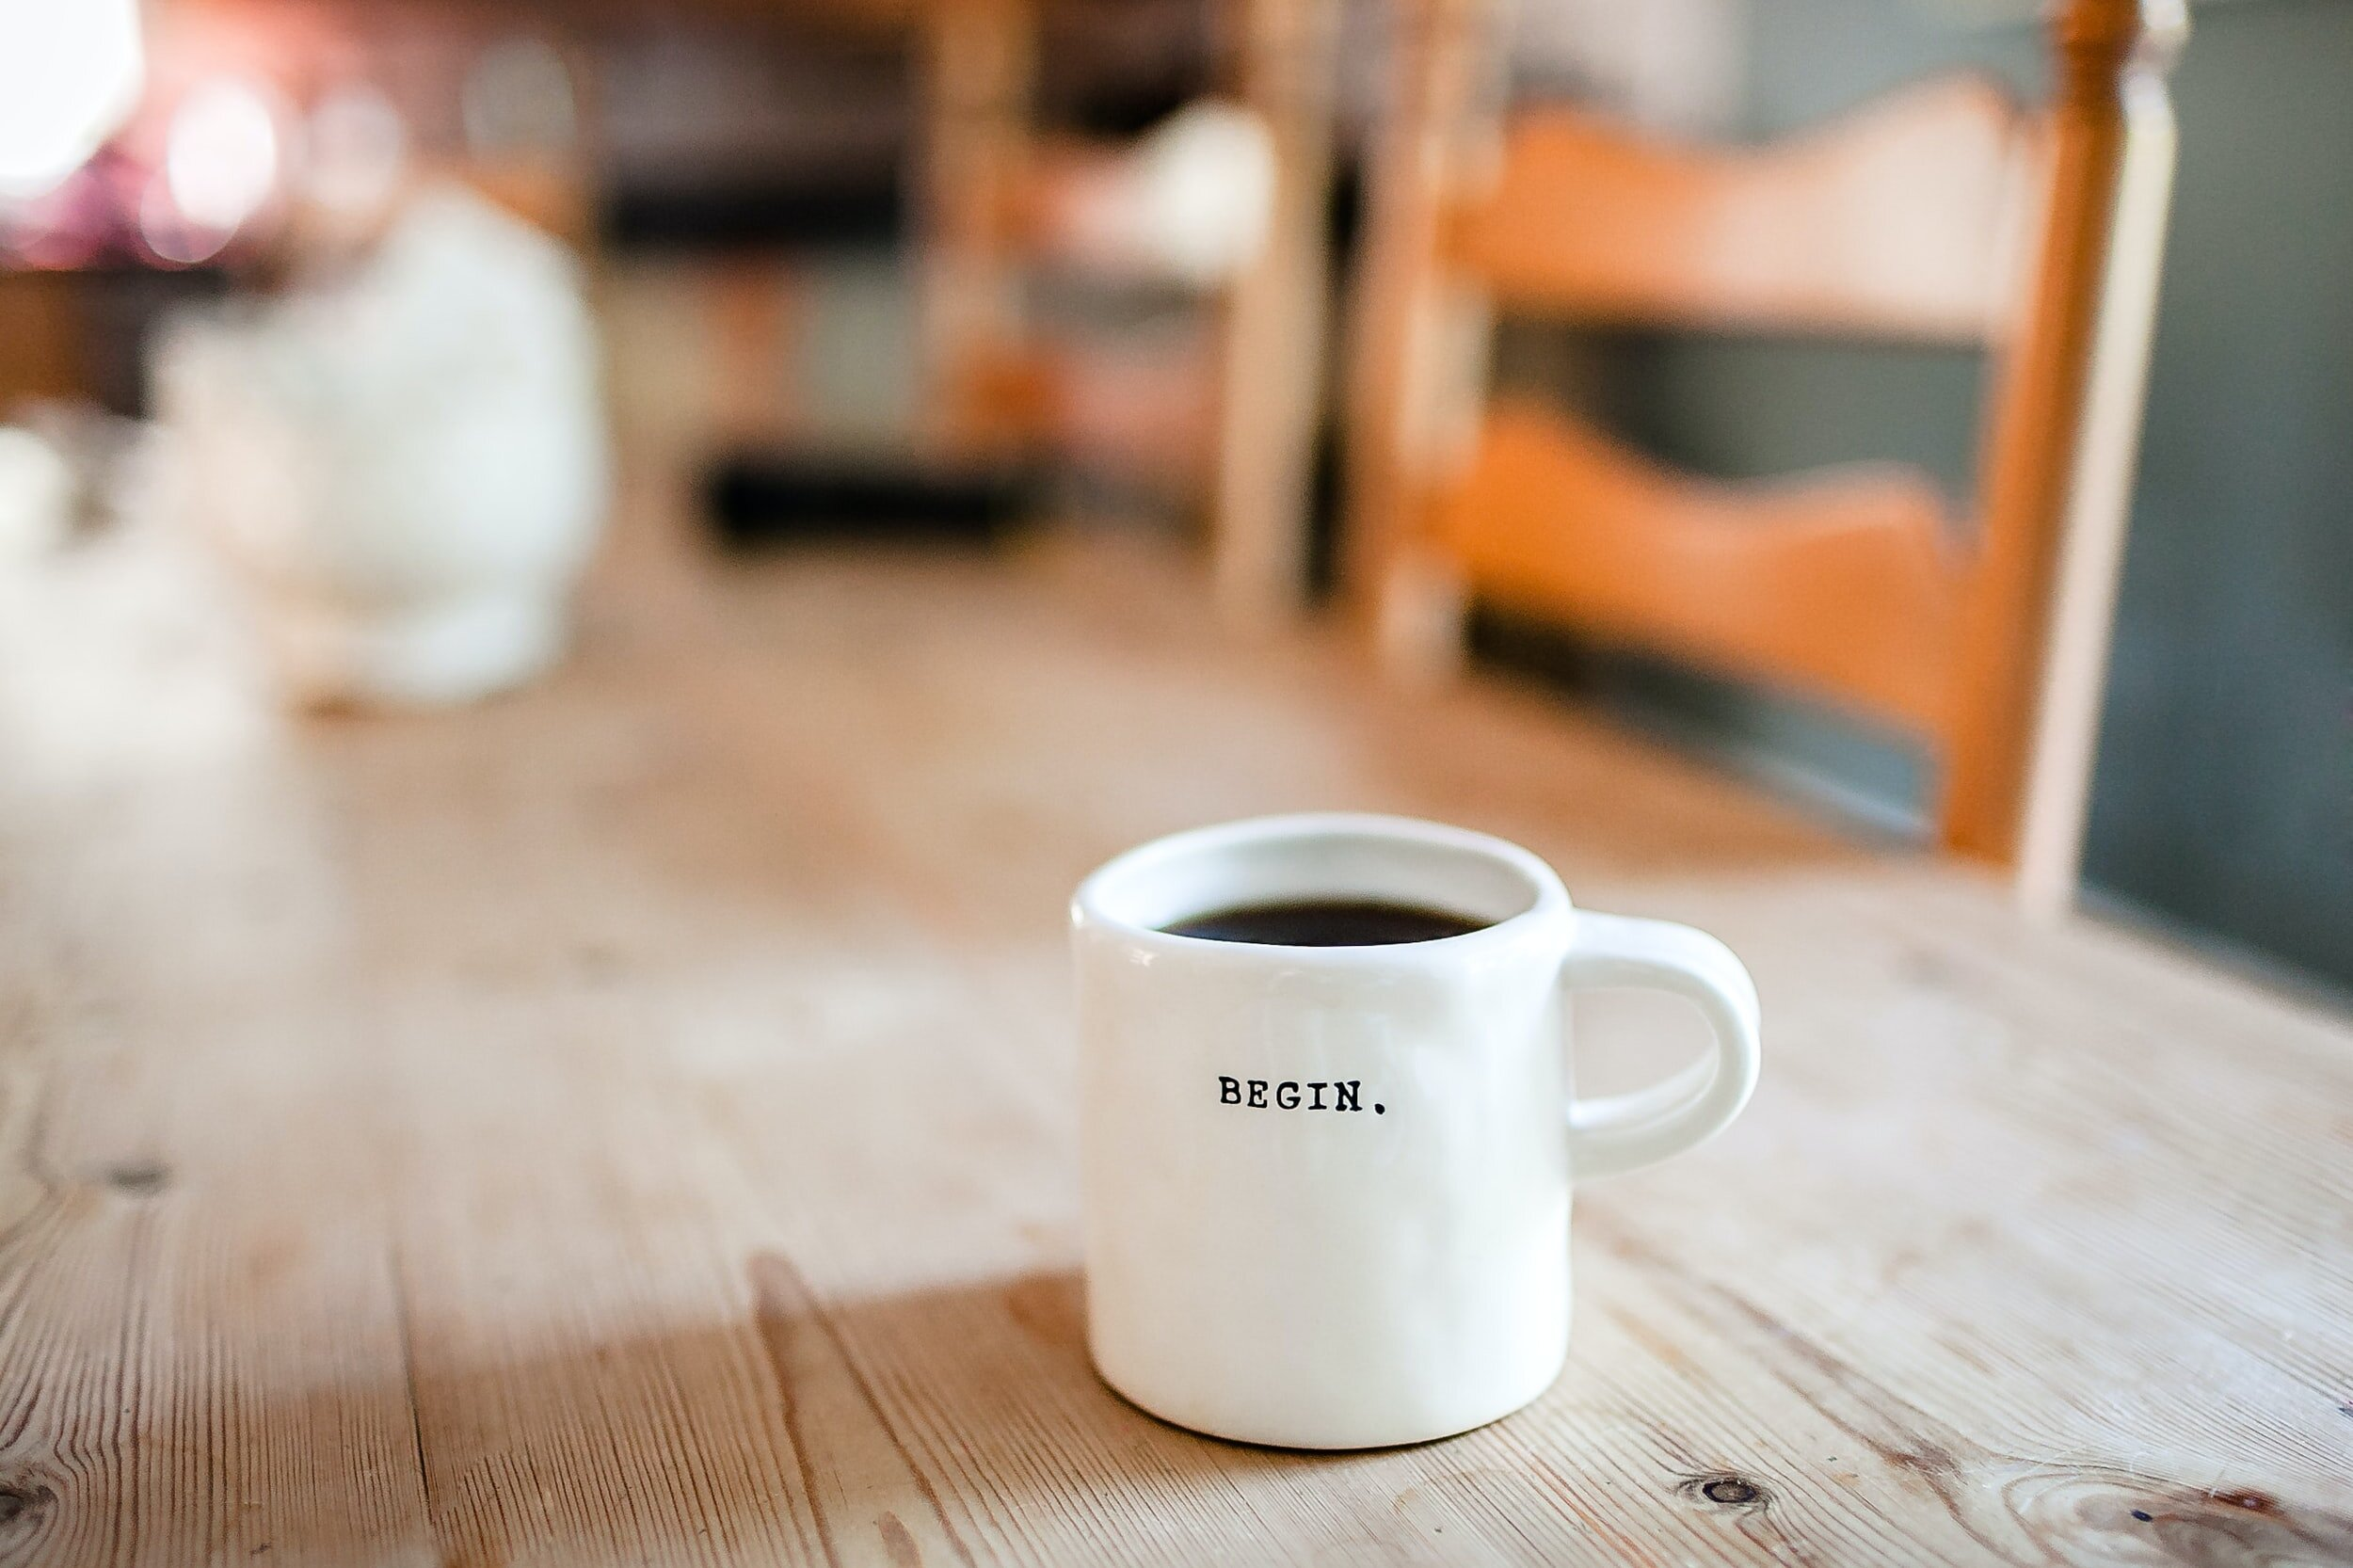 picture of a coffee mug on wooden table that reads BEGIN.